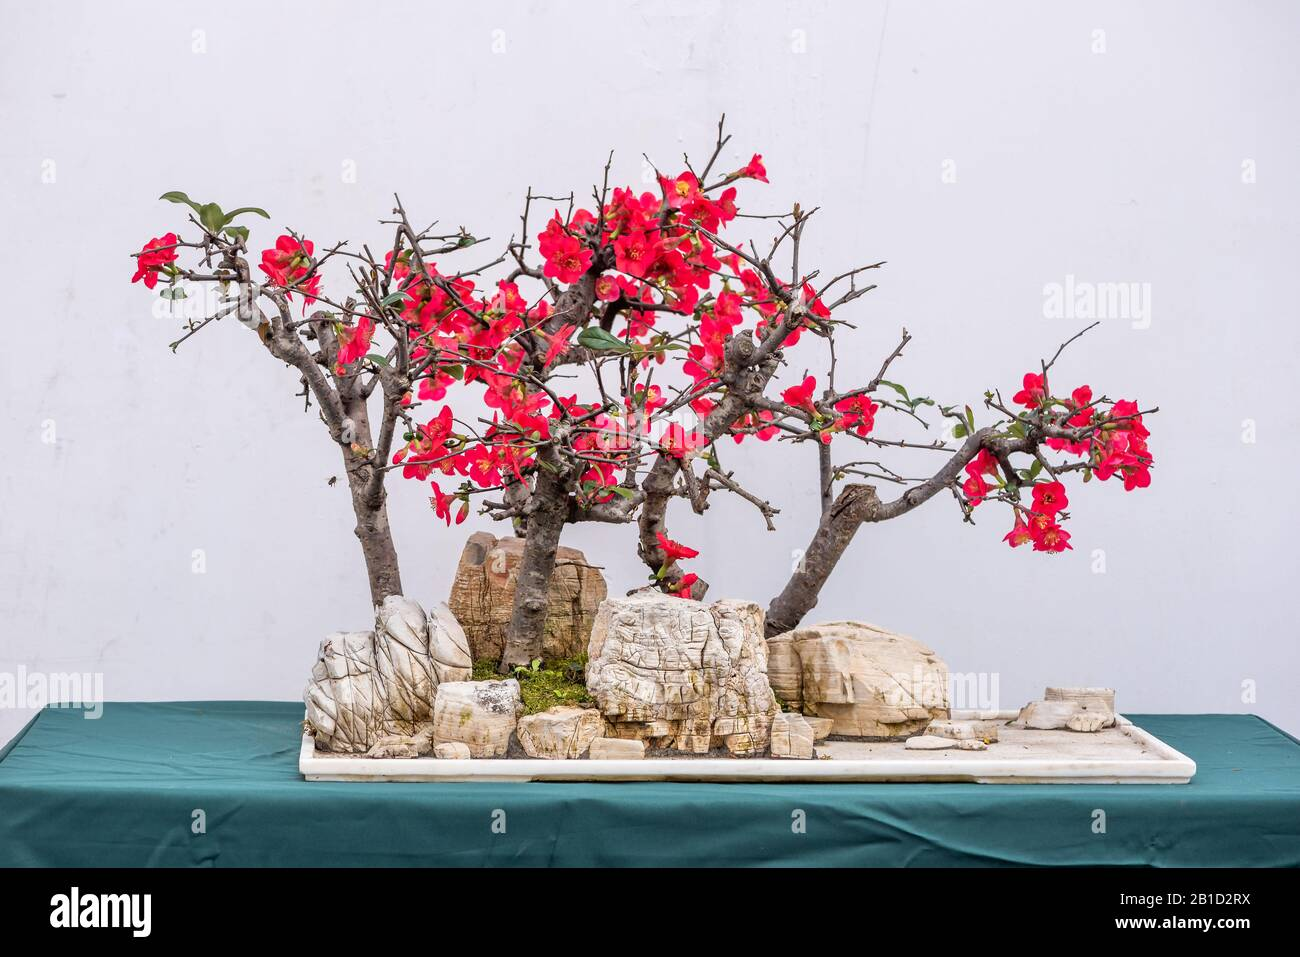 Bonsai Tree On A Rock With Pink Flowers Against White Wall In China Stock Photo Alamy